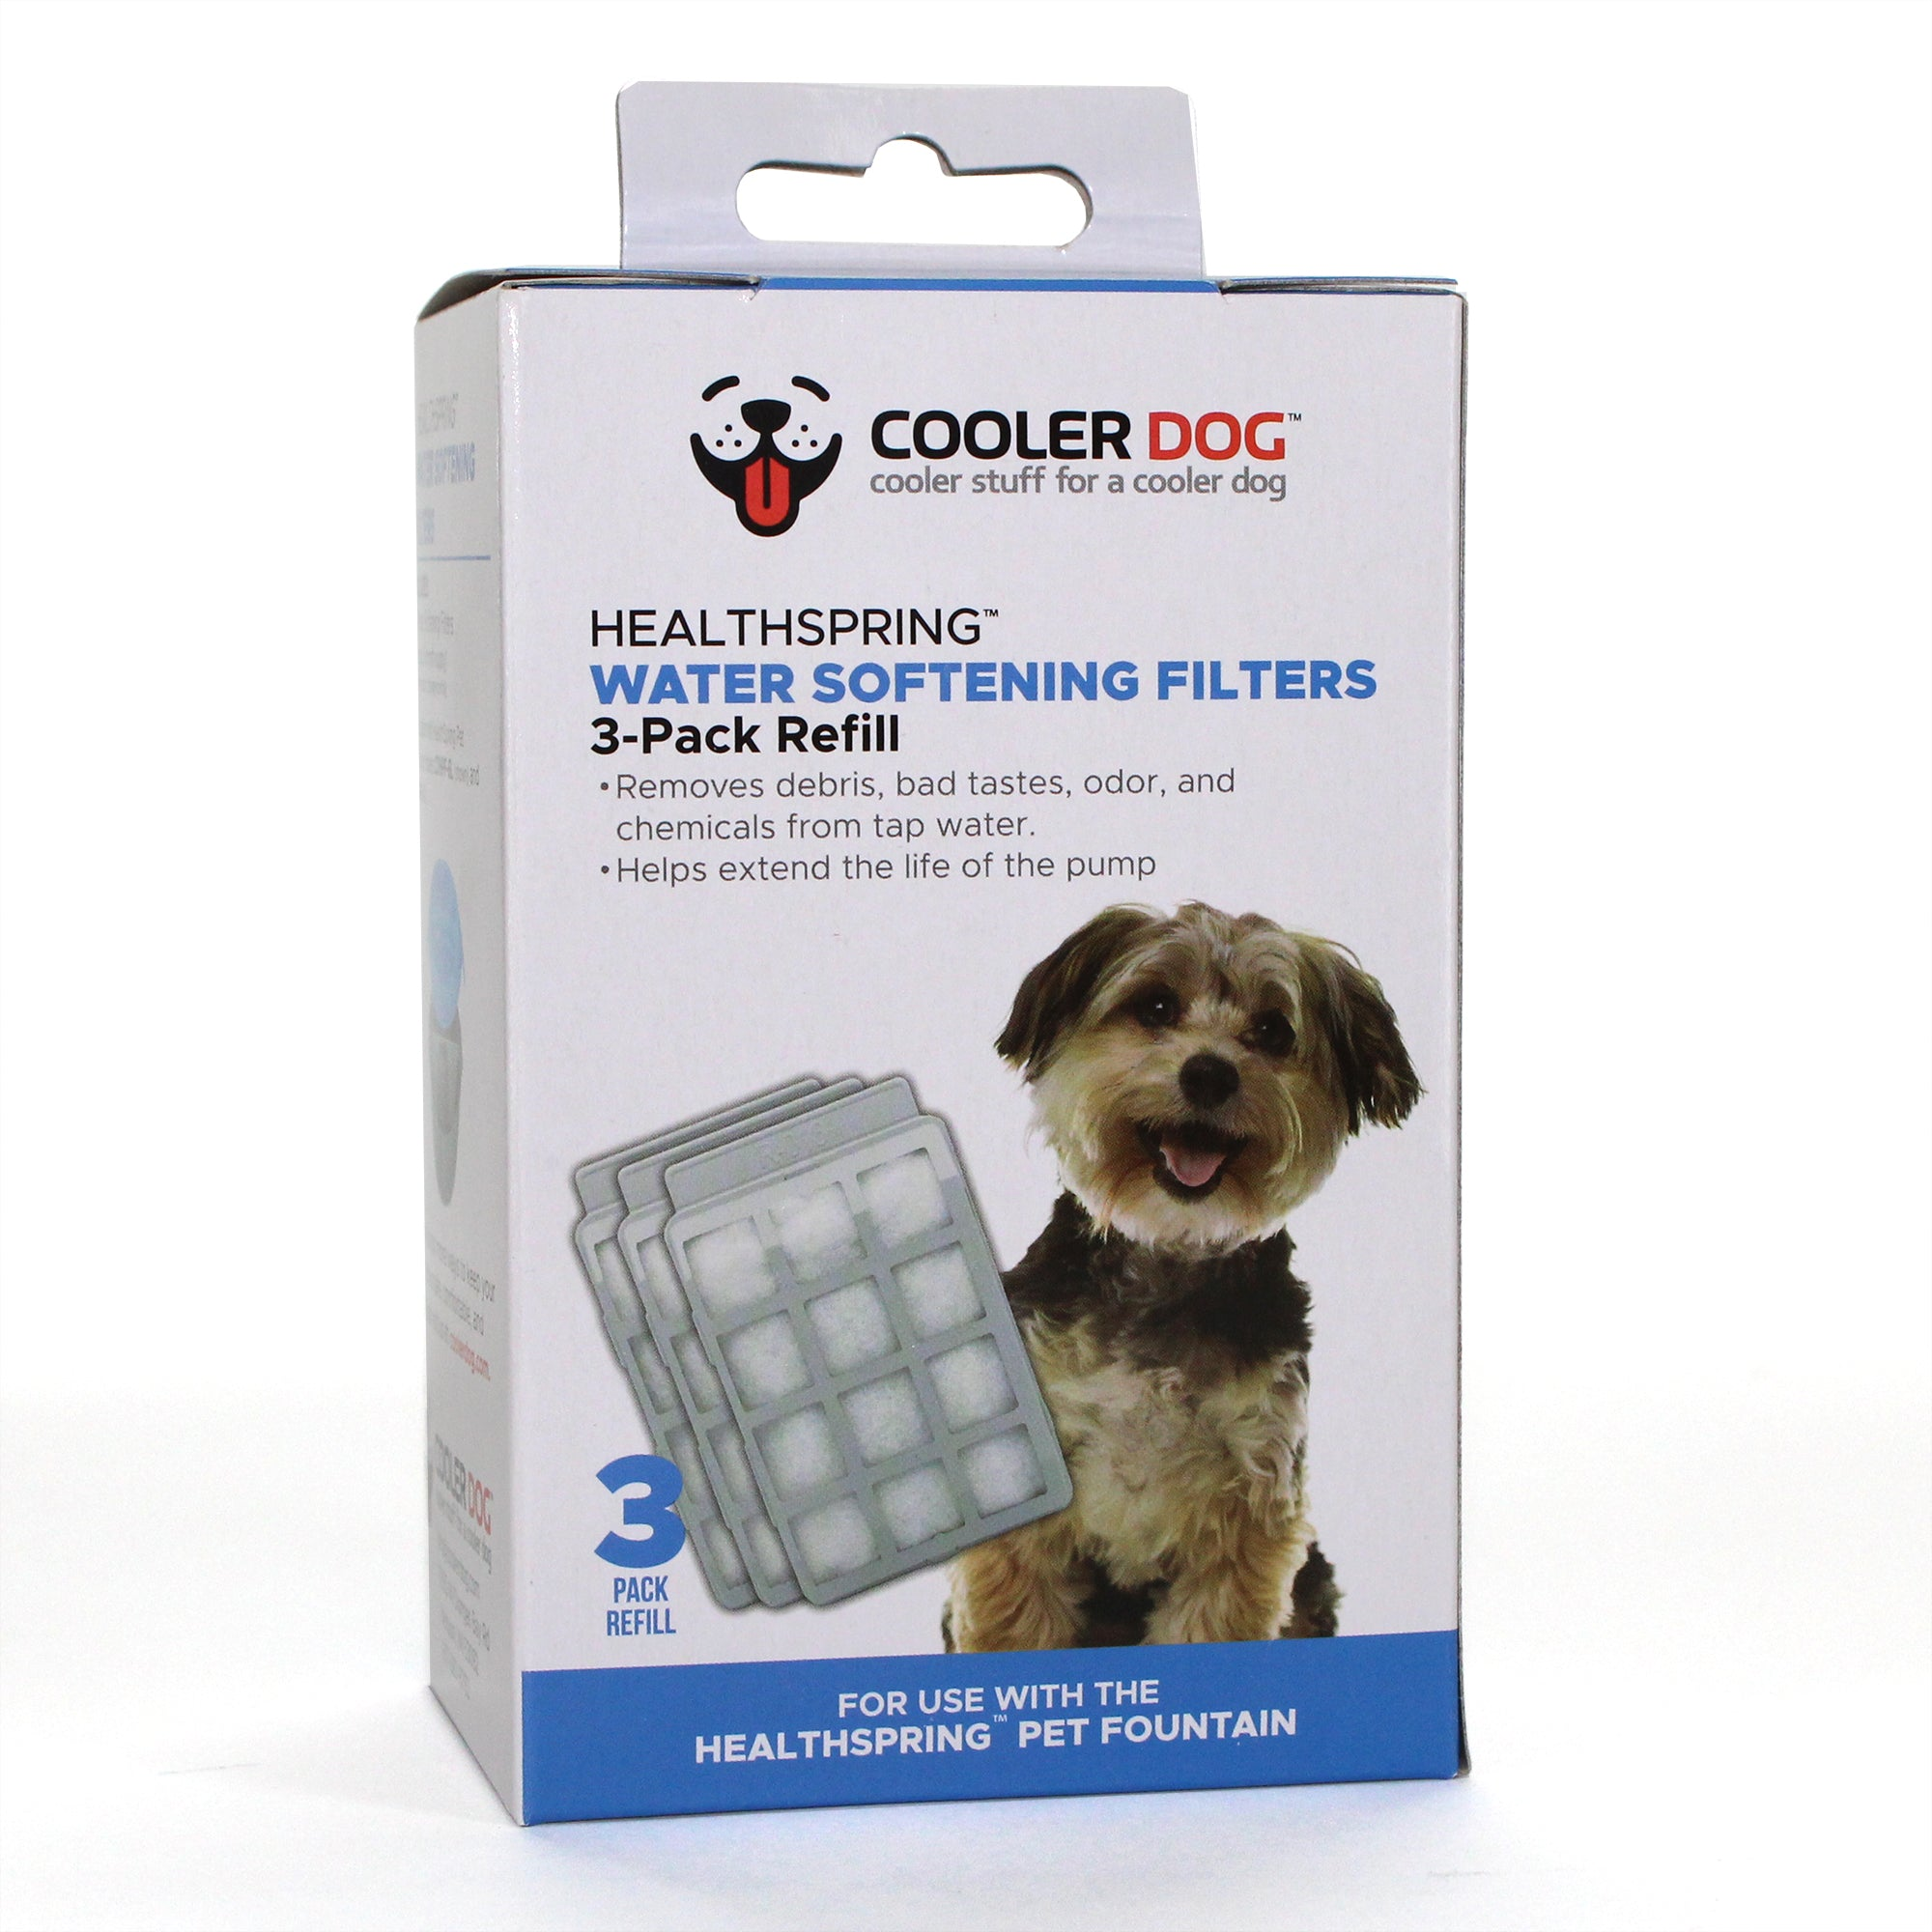 CoolerDog Healthspring Pet Fountain Water Softener Filters, 3-Pack